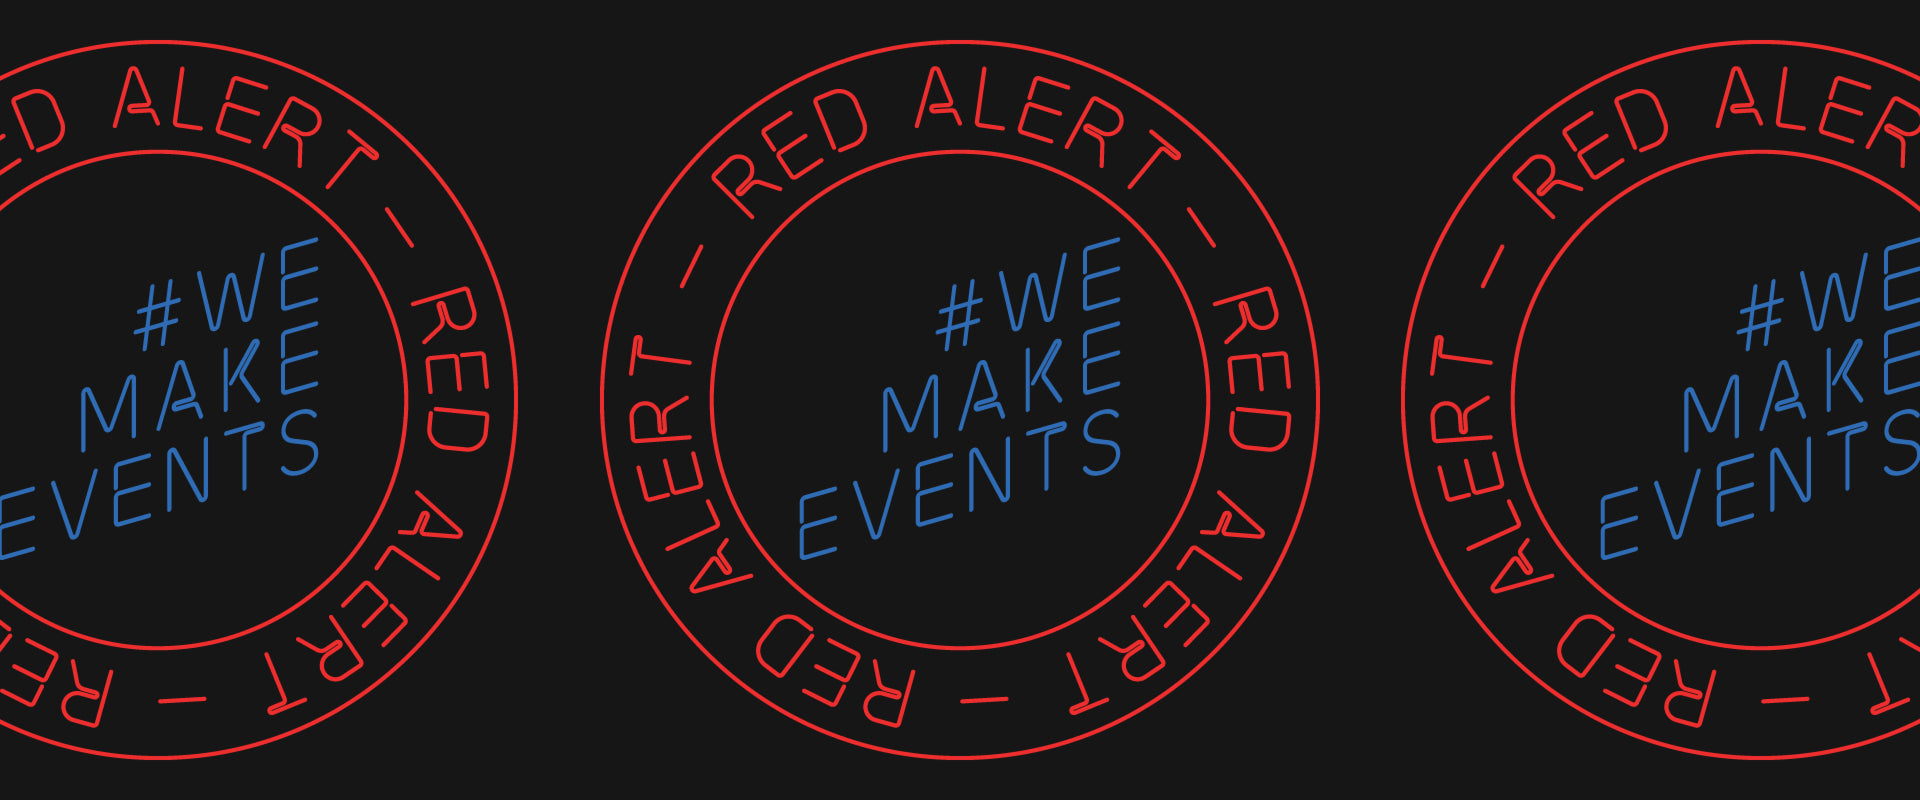 Audio Architect Apparel Supports #WEMAKEEVENTS